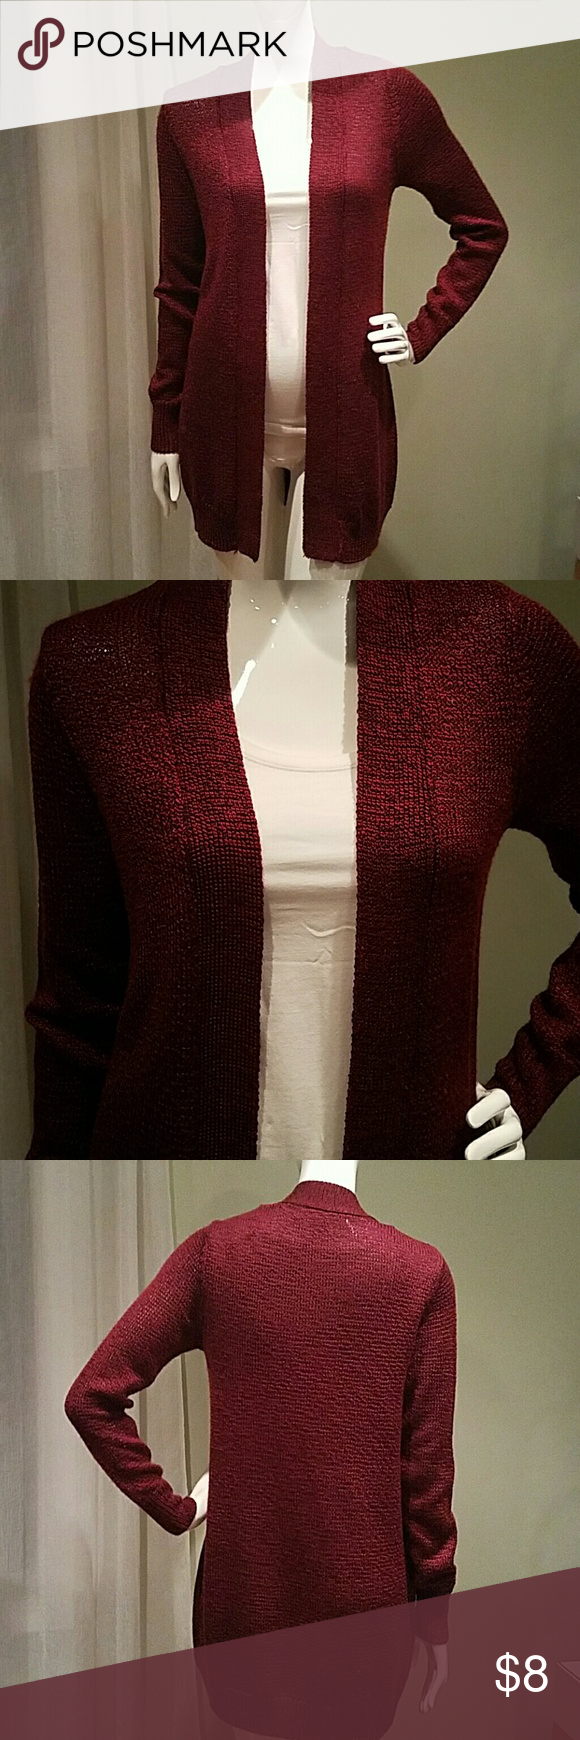 Burgundy open cardigan FOREVER21 knit burgundy open cardigan. Very soft. Worn once Forever 21 Sweaters Cardigans